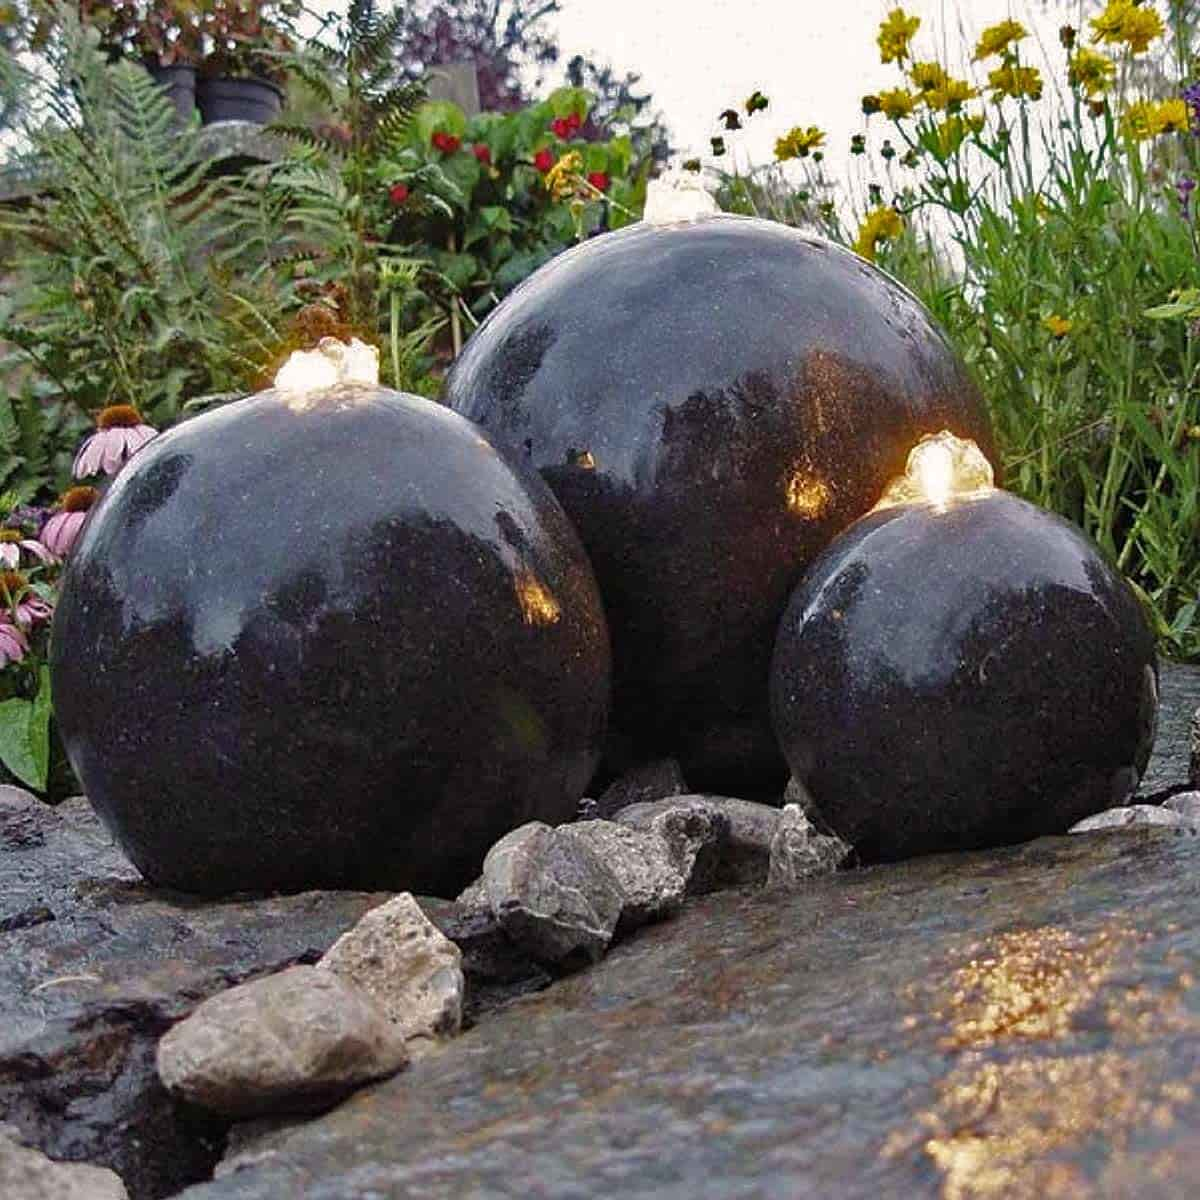 fontaine de jardin lumineuse 3 sph res sujet fontaine pompe bassin. Black Bedroom Furniture Sets. Home Design Ideas